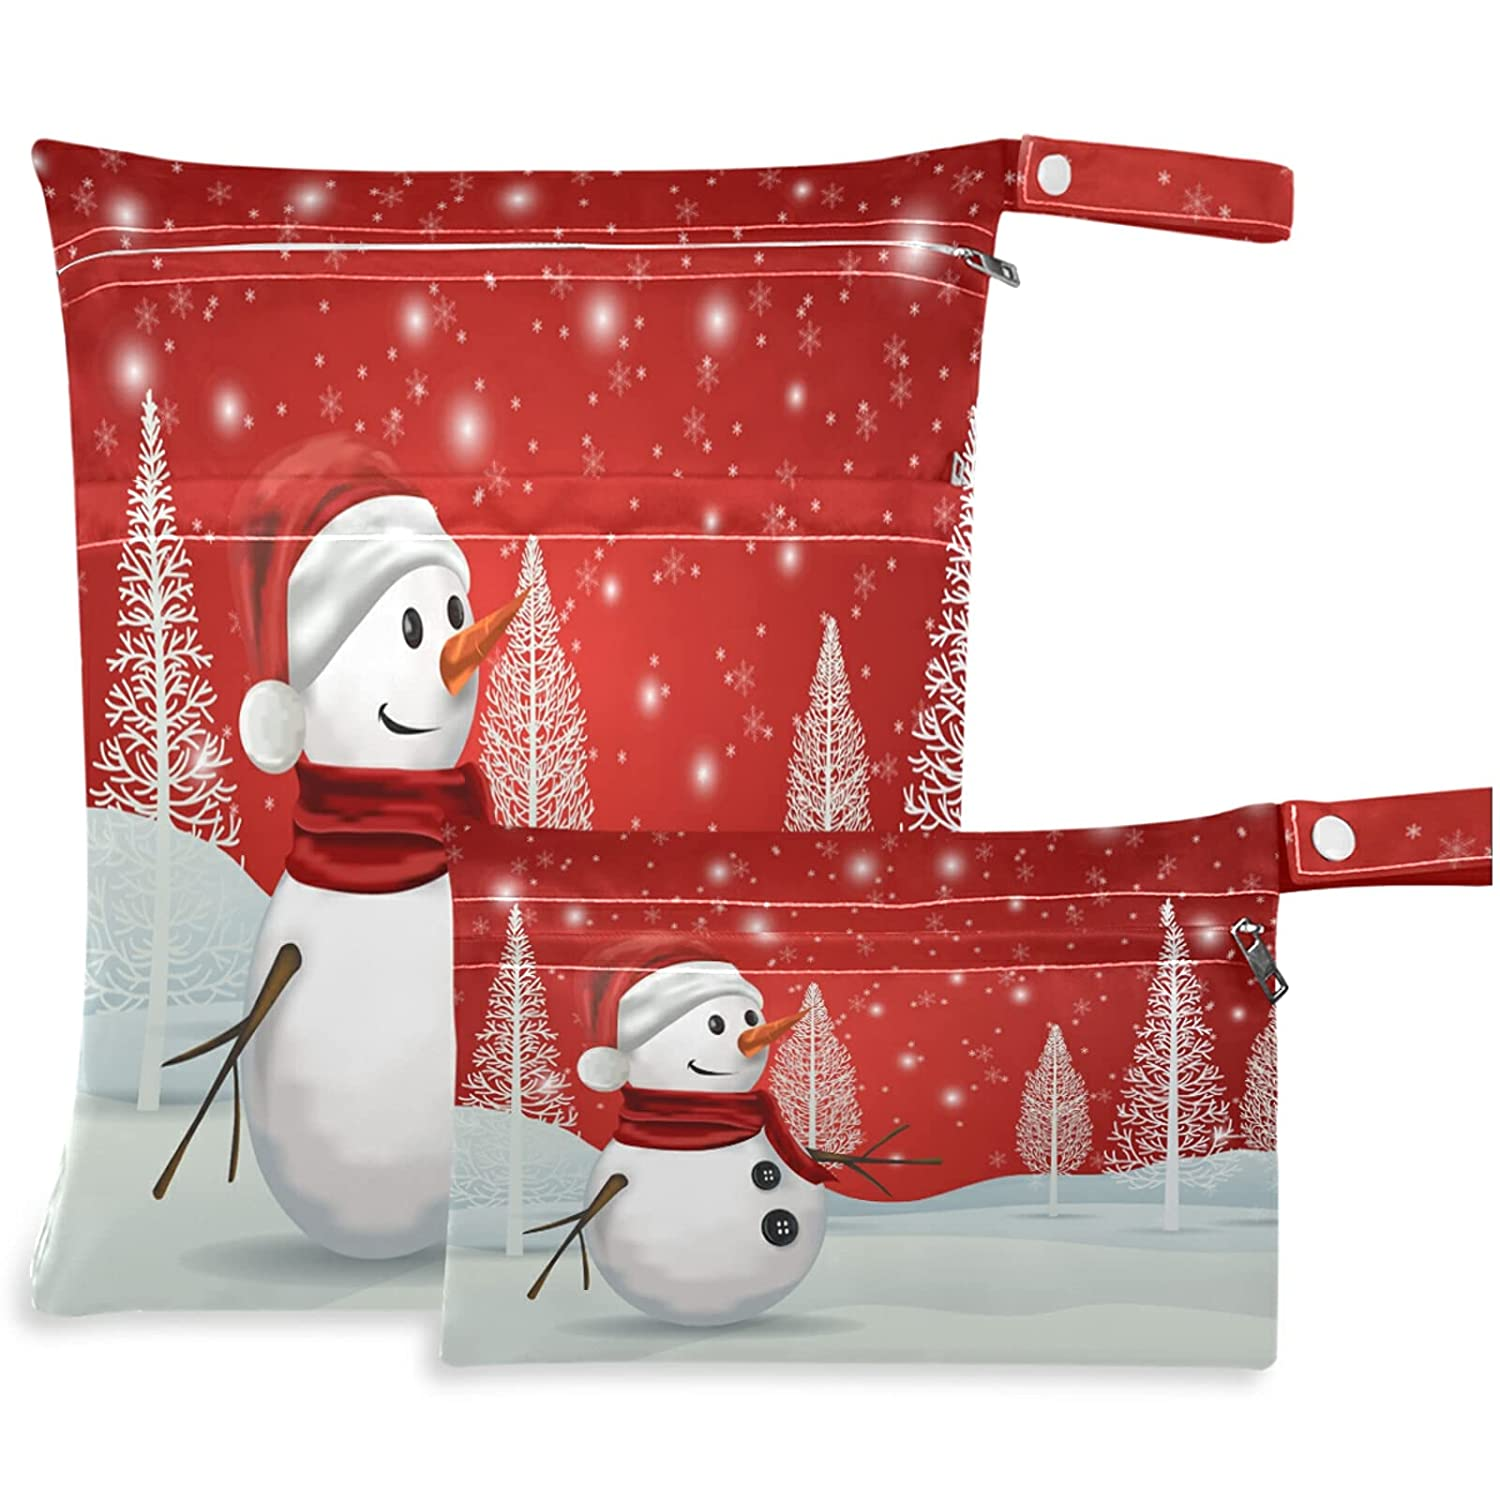 visesunny Snowman On Red Trust Popular product Snowflake 2Pcs with Bag Wet Po Zippered